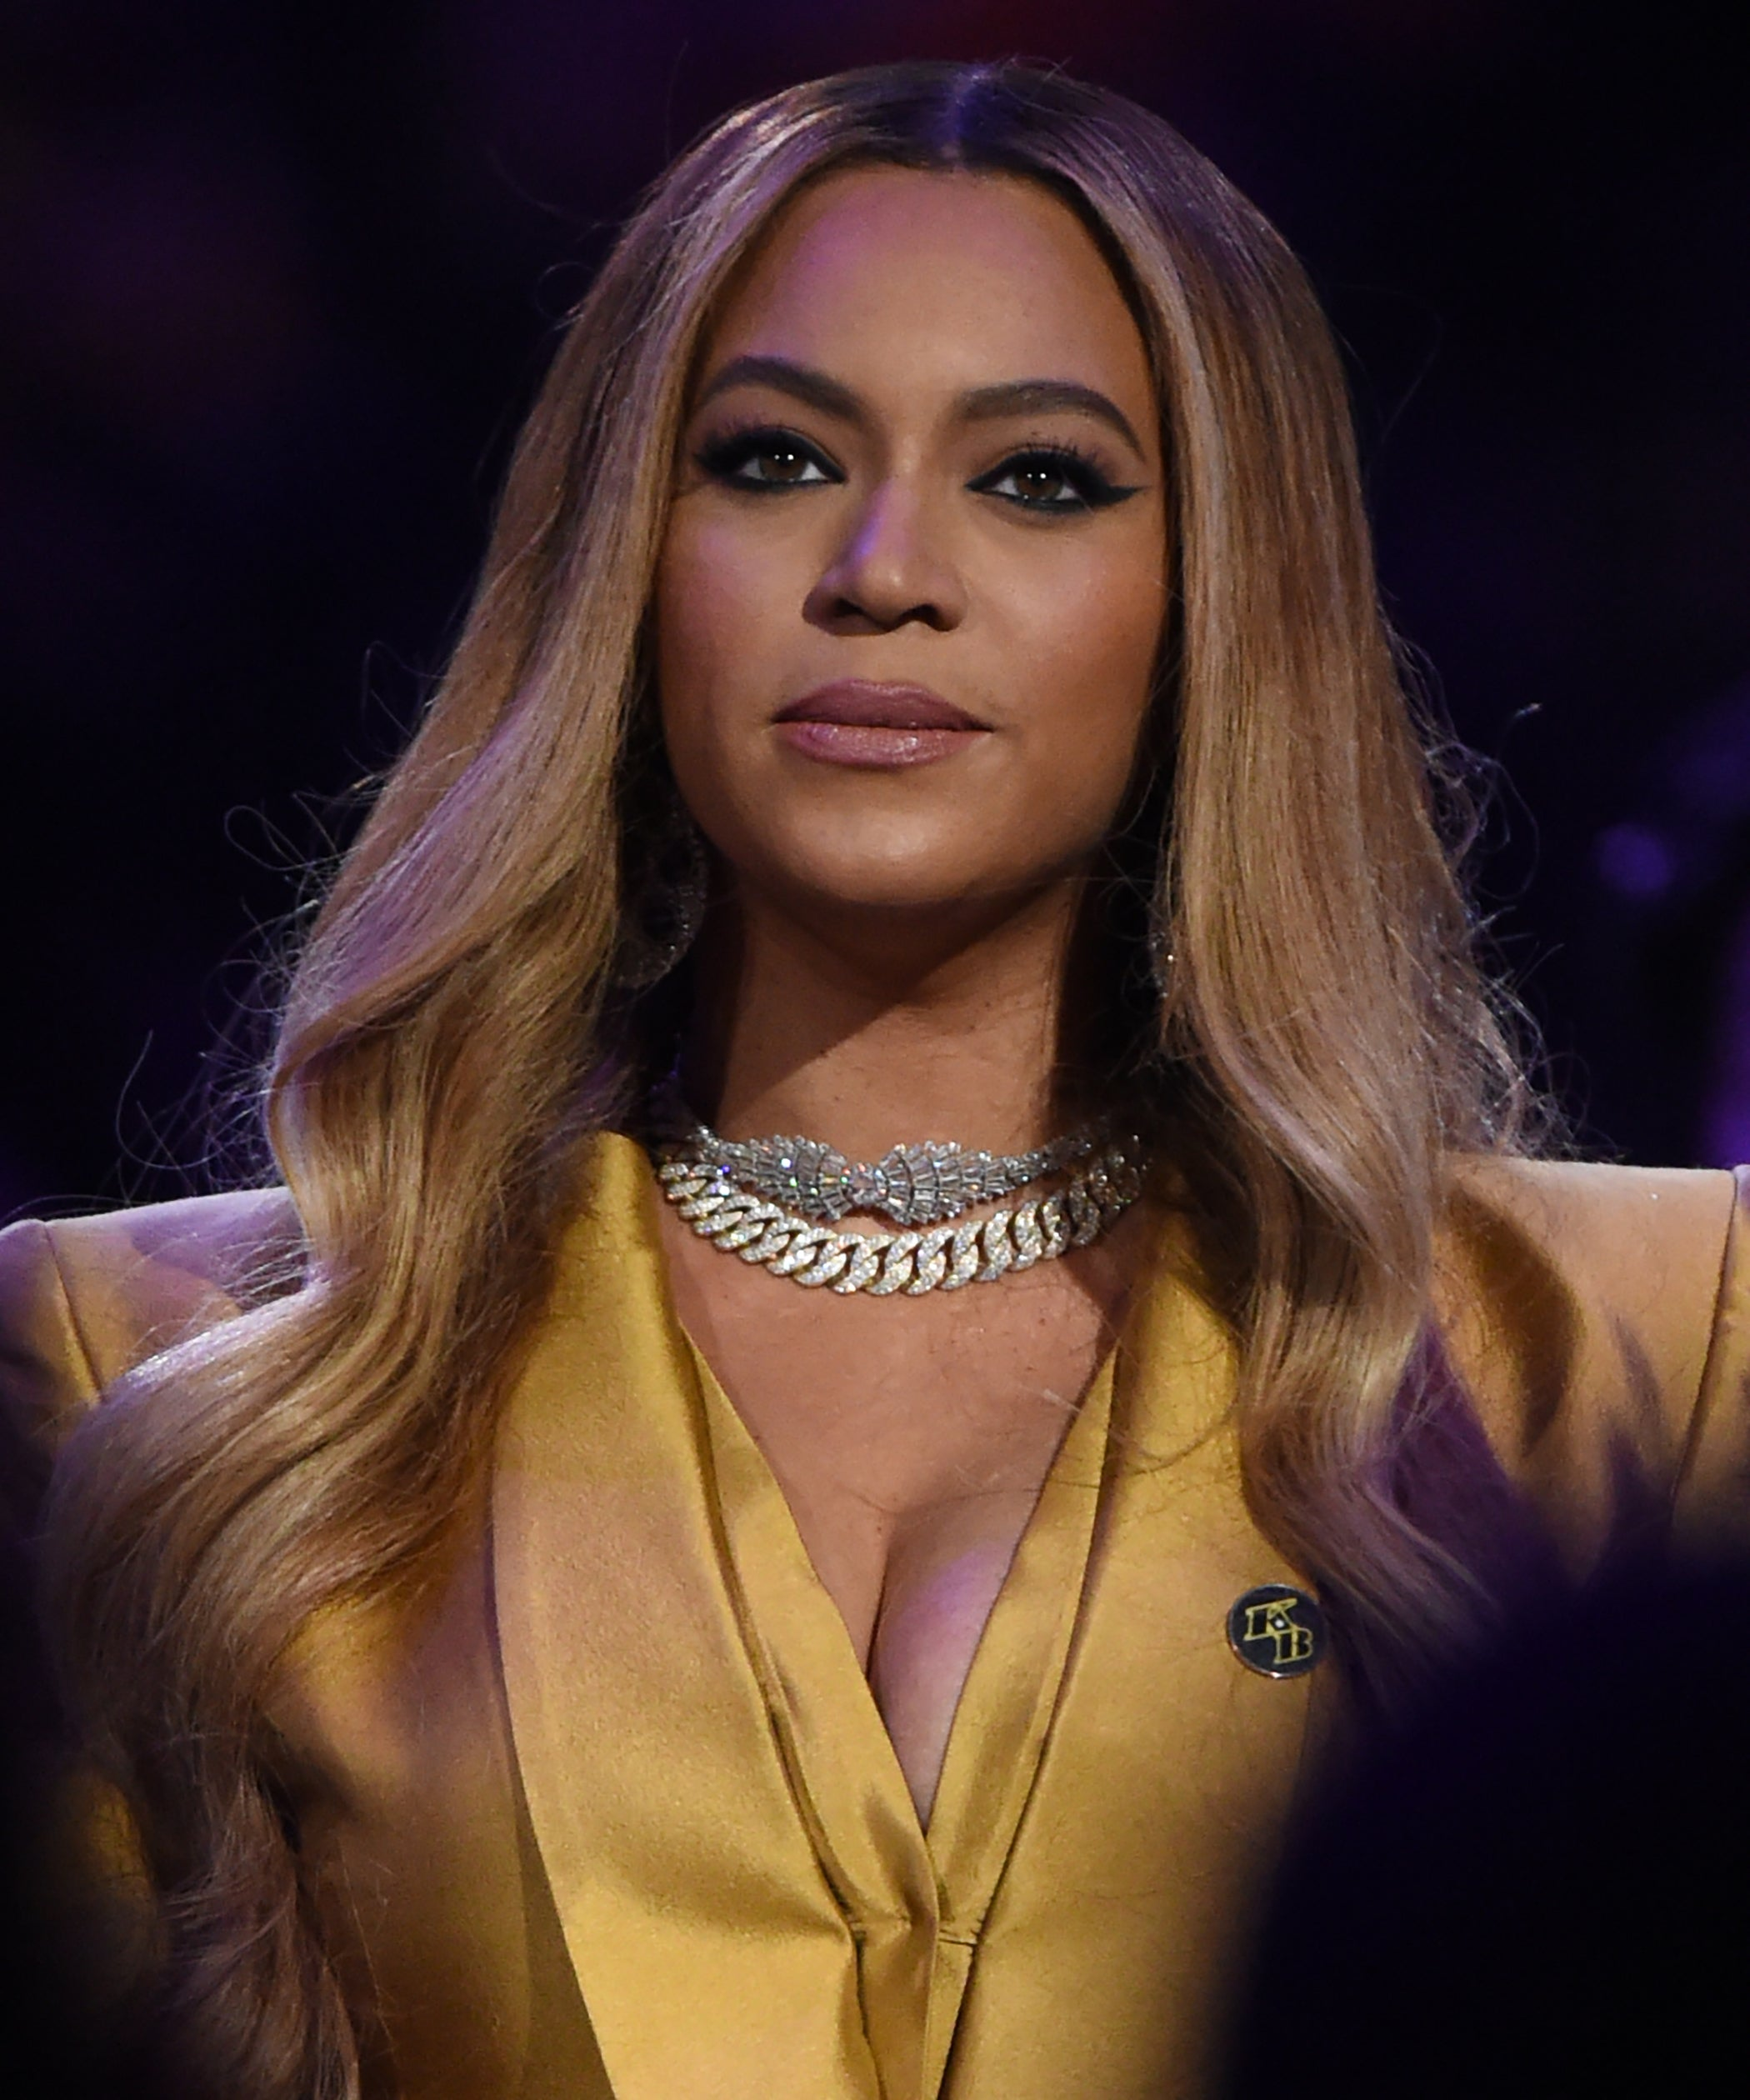 Beyonce Wants Justice For Breonna Taylor In Open Letter